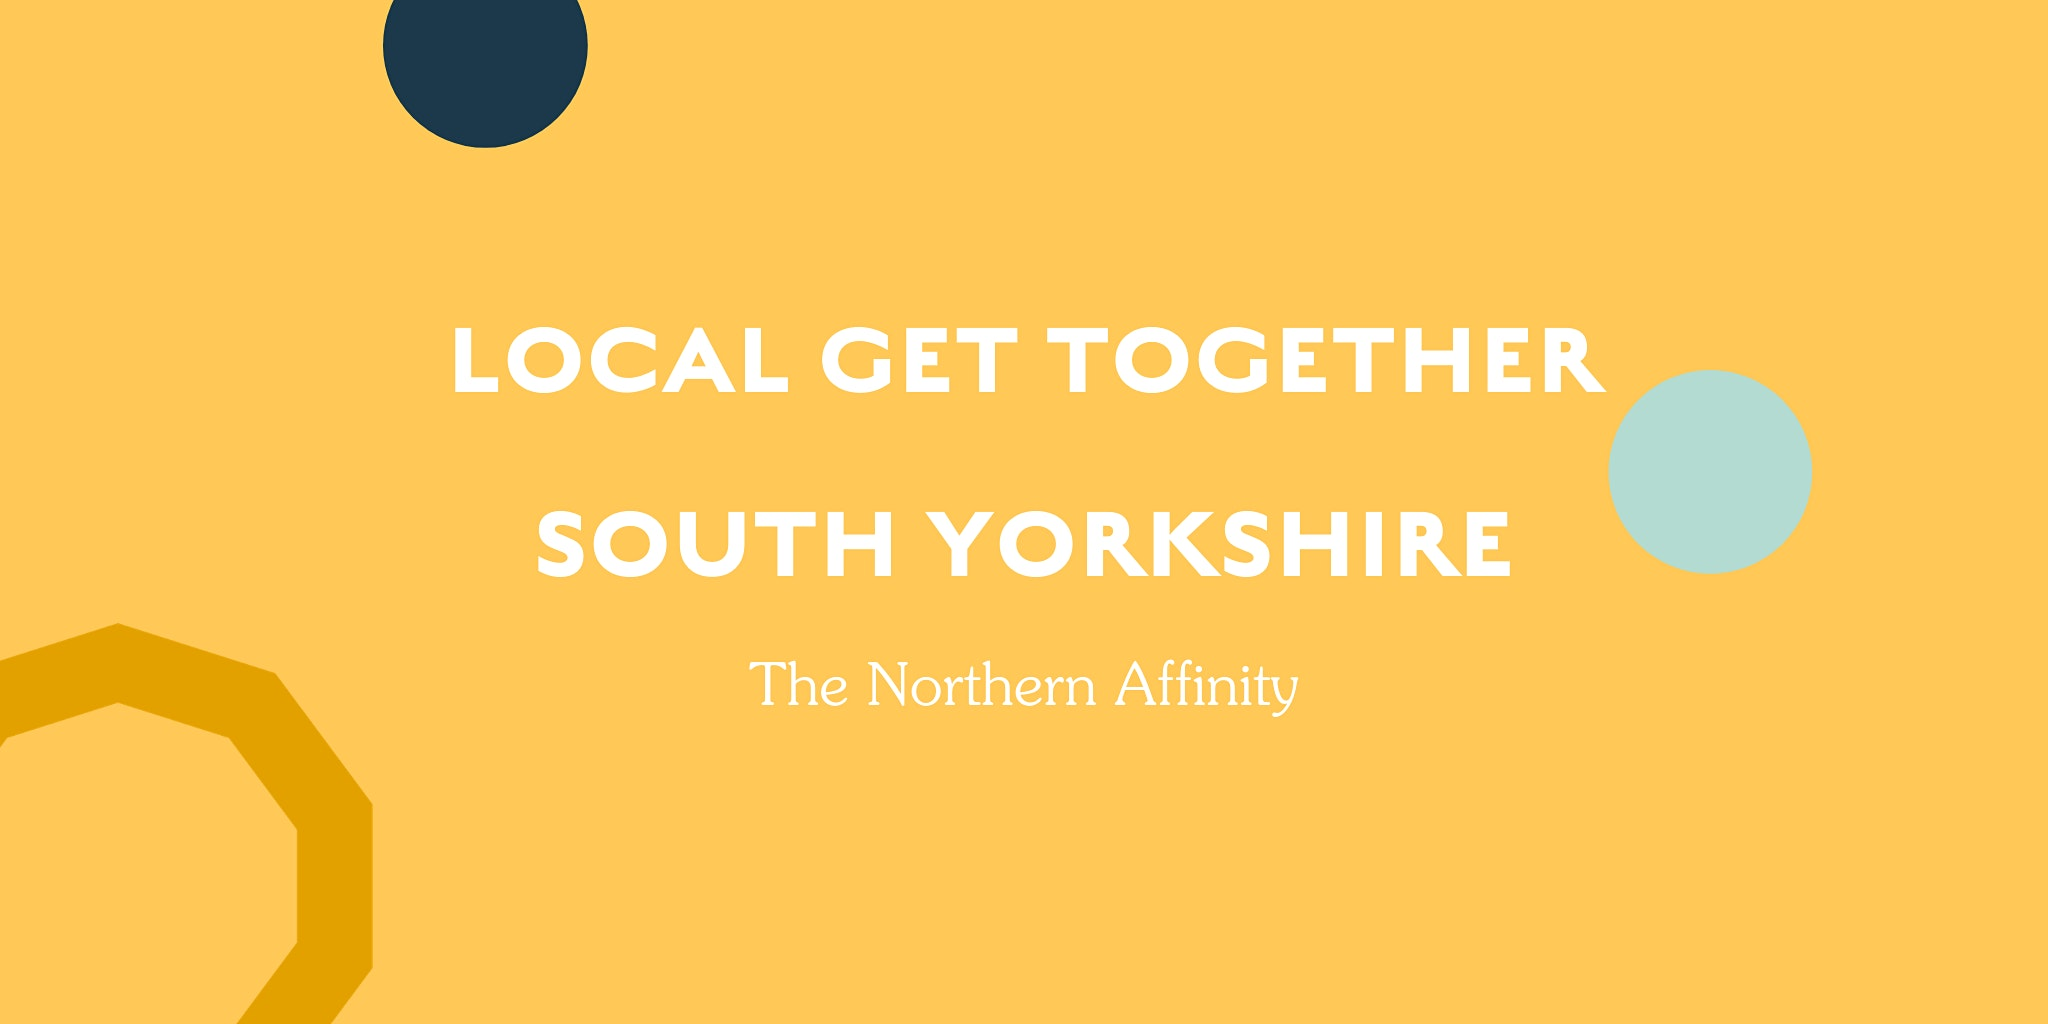 The Northern Affinity Local Get Together – South Yorkshire